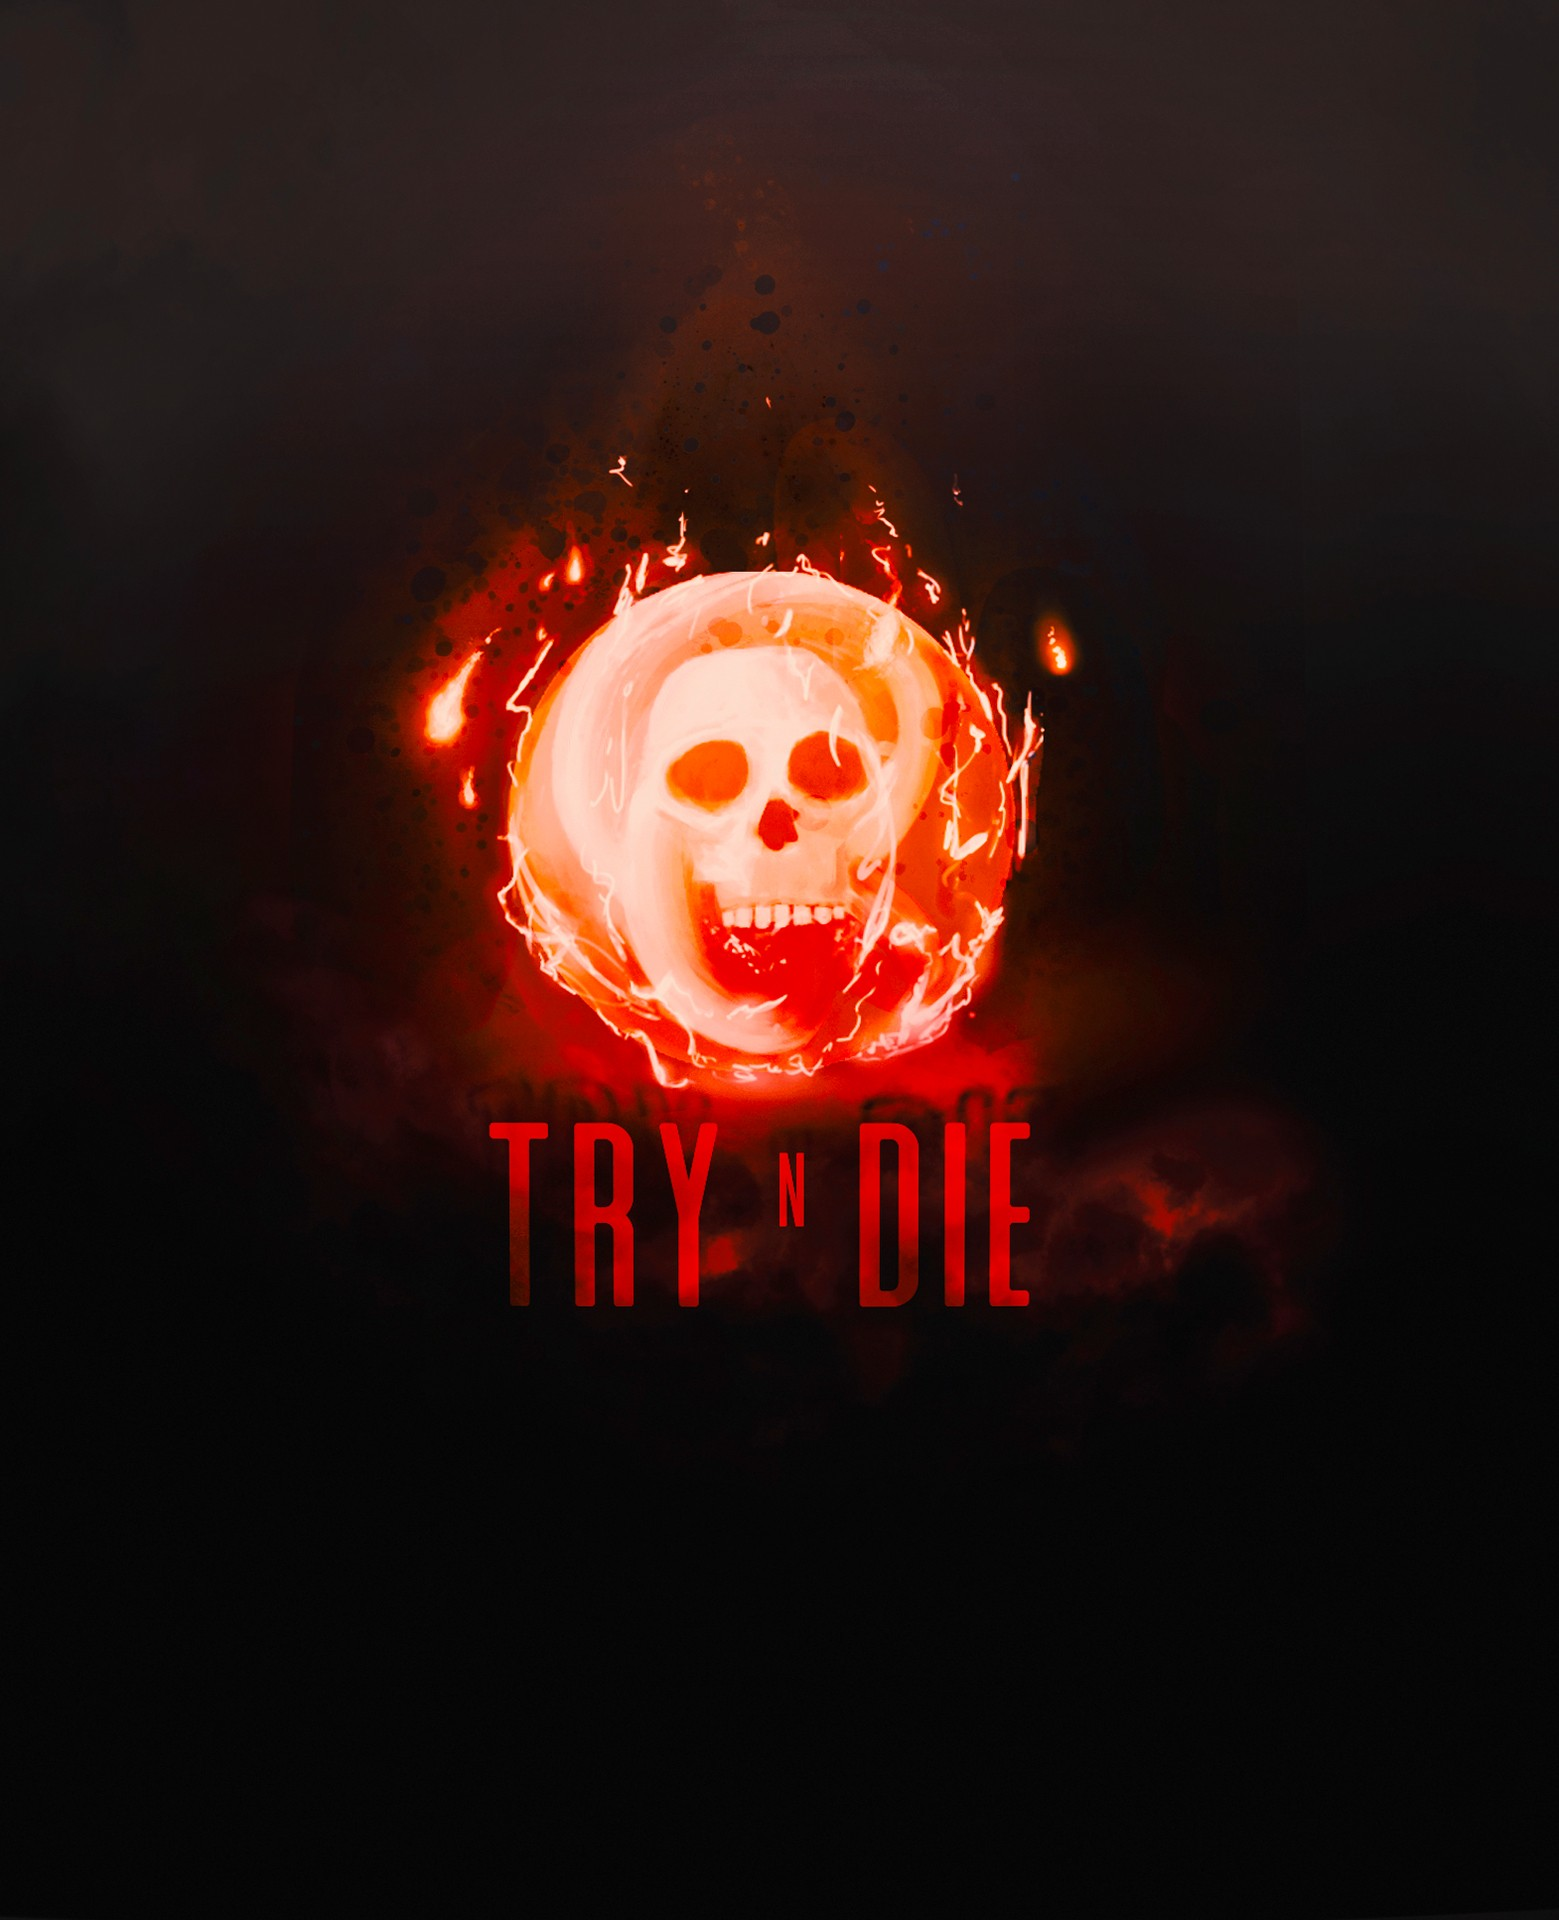 Wallpaper TRY - RED FIRE par ixah